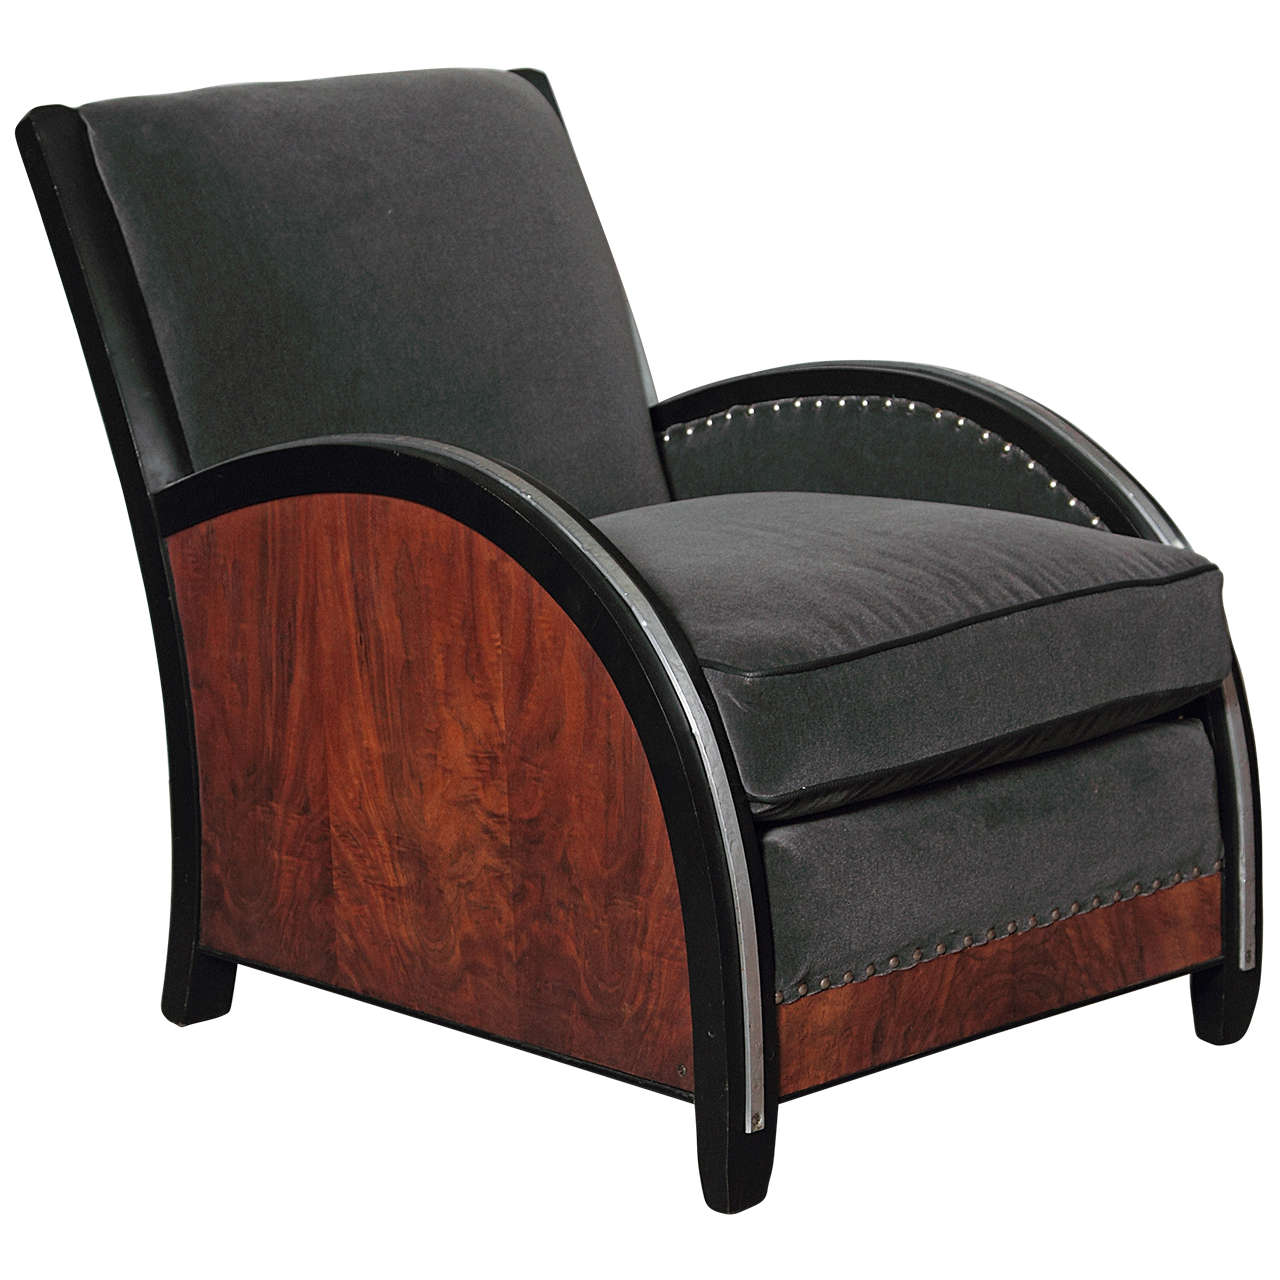 Machine Age Art Deco Modernist Lounge Chair in the manner of Paul Frankl